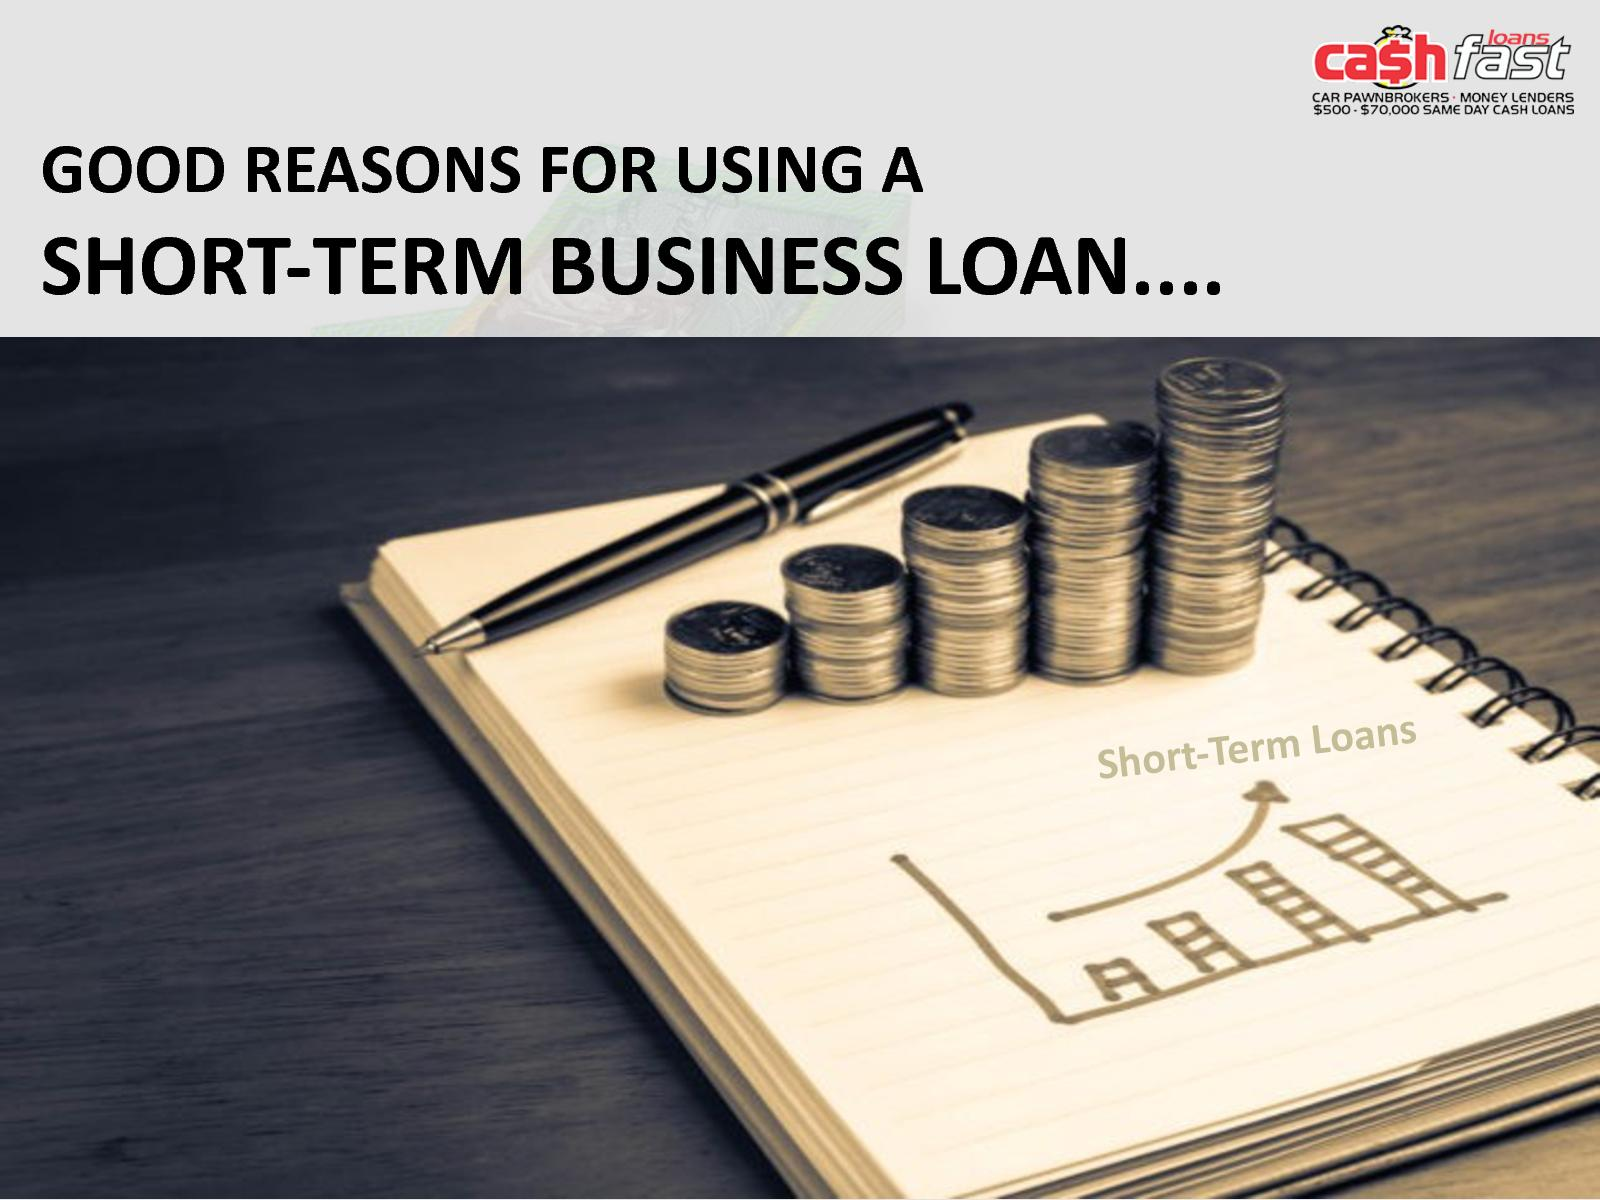 Best Short Term Loans >> Calameo Presentation On Short Term Loans The Best Way To Get